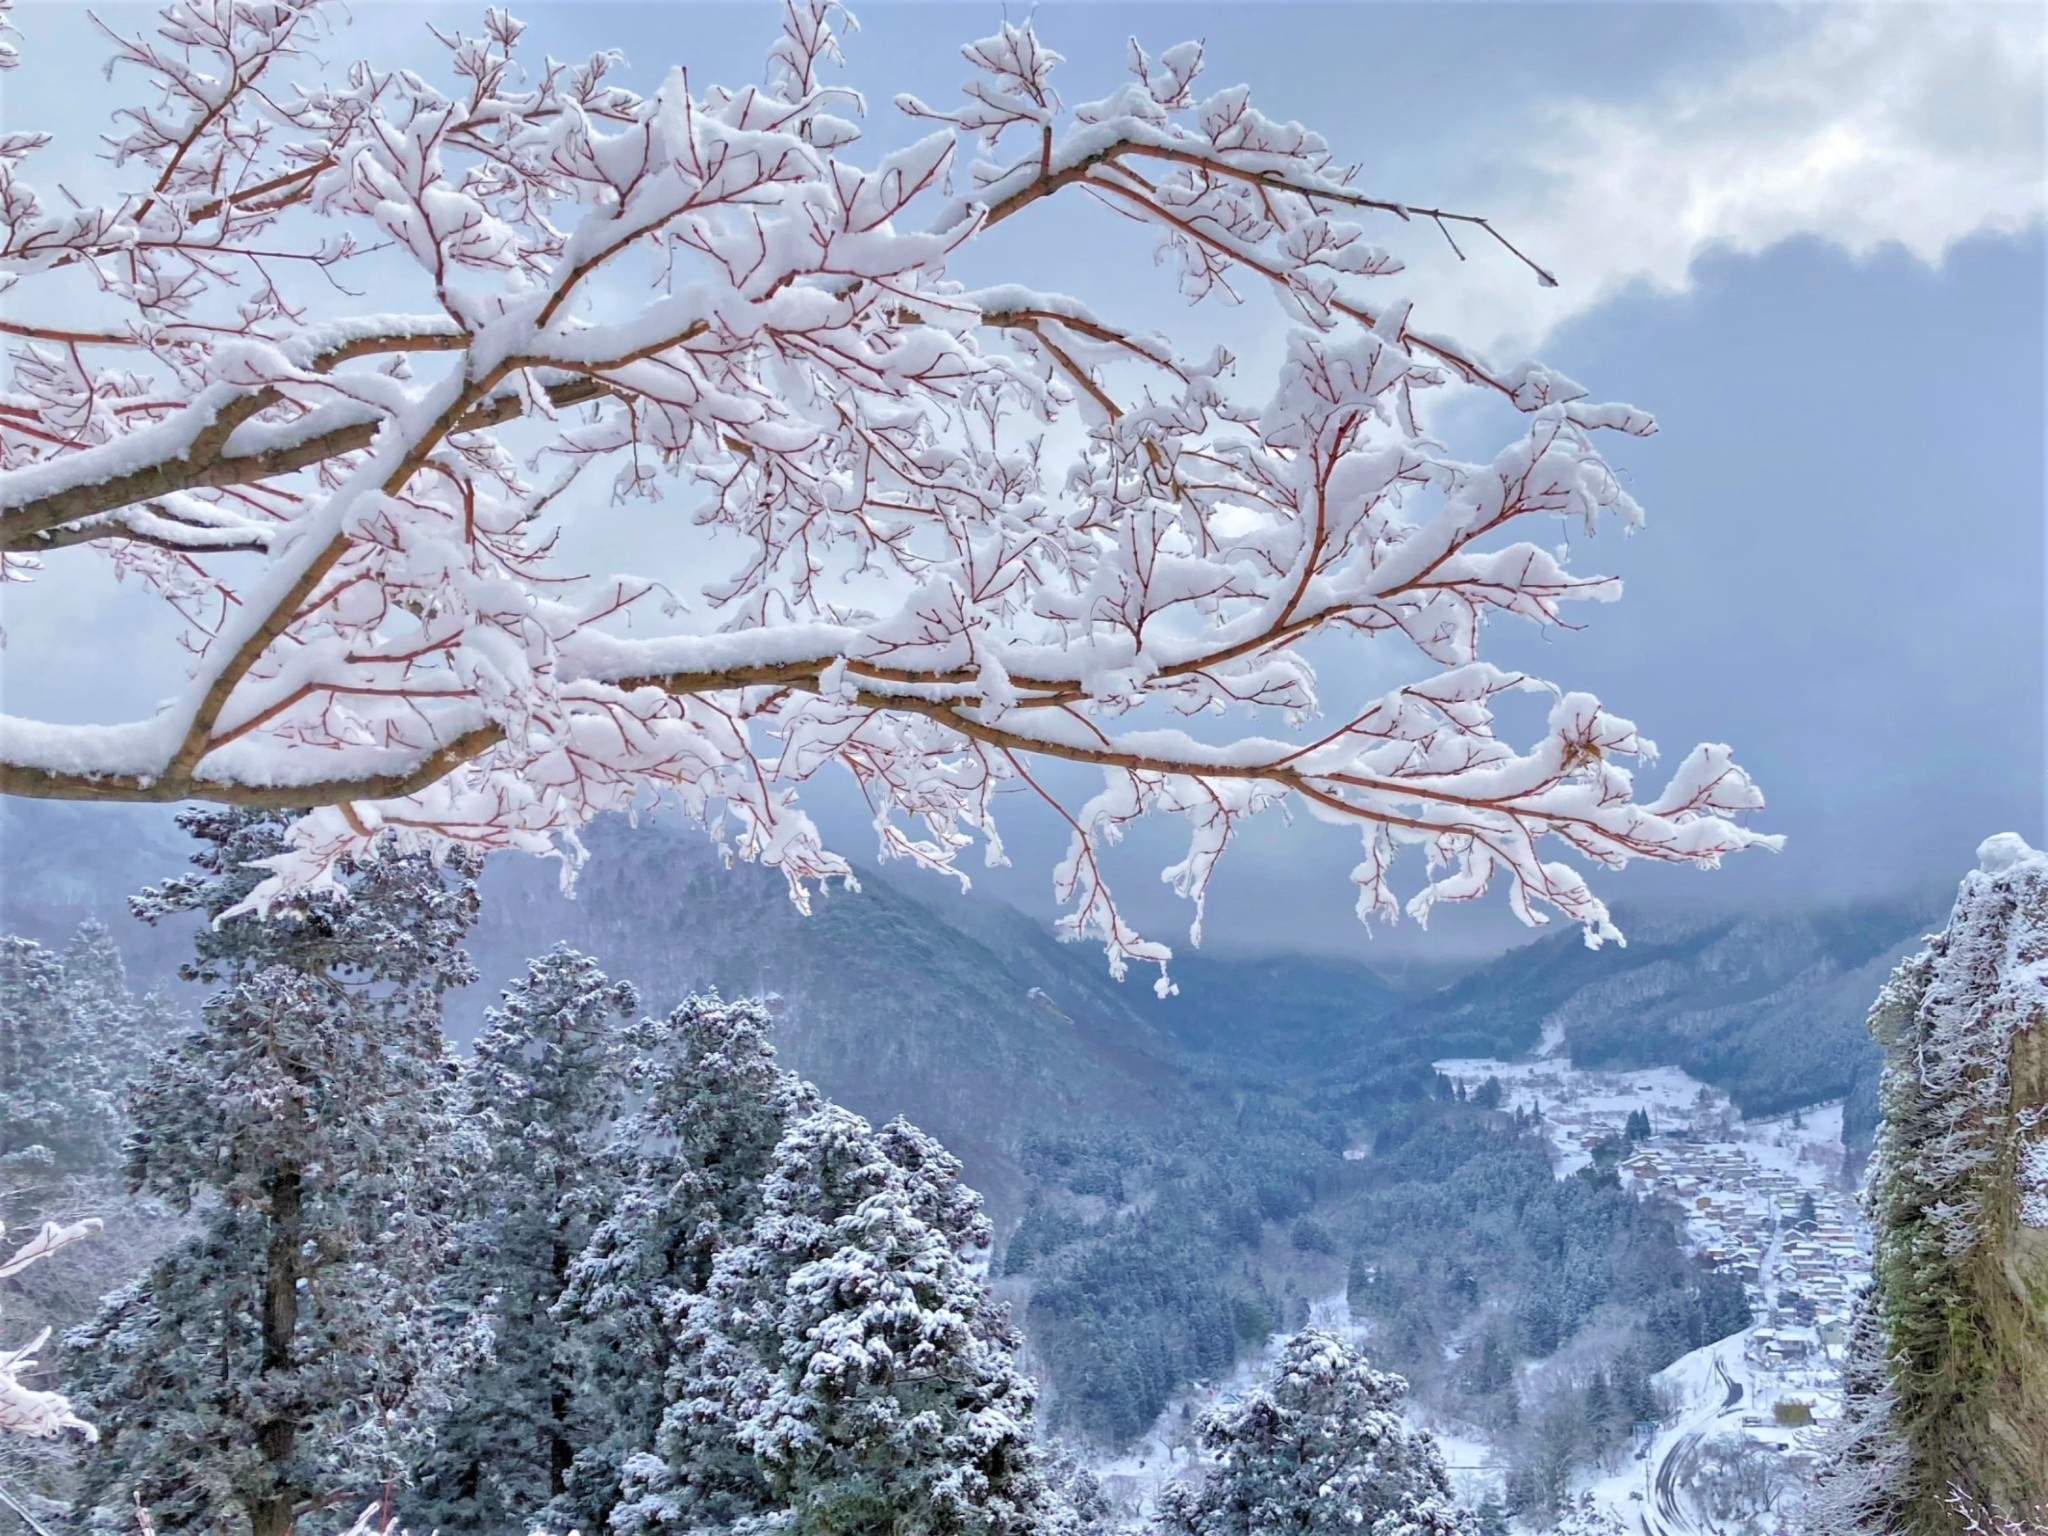 A winter mountain-top view of the Japanese town of Yamadera featuring beautiful snow-covered horizontal tree branches.